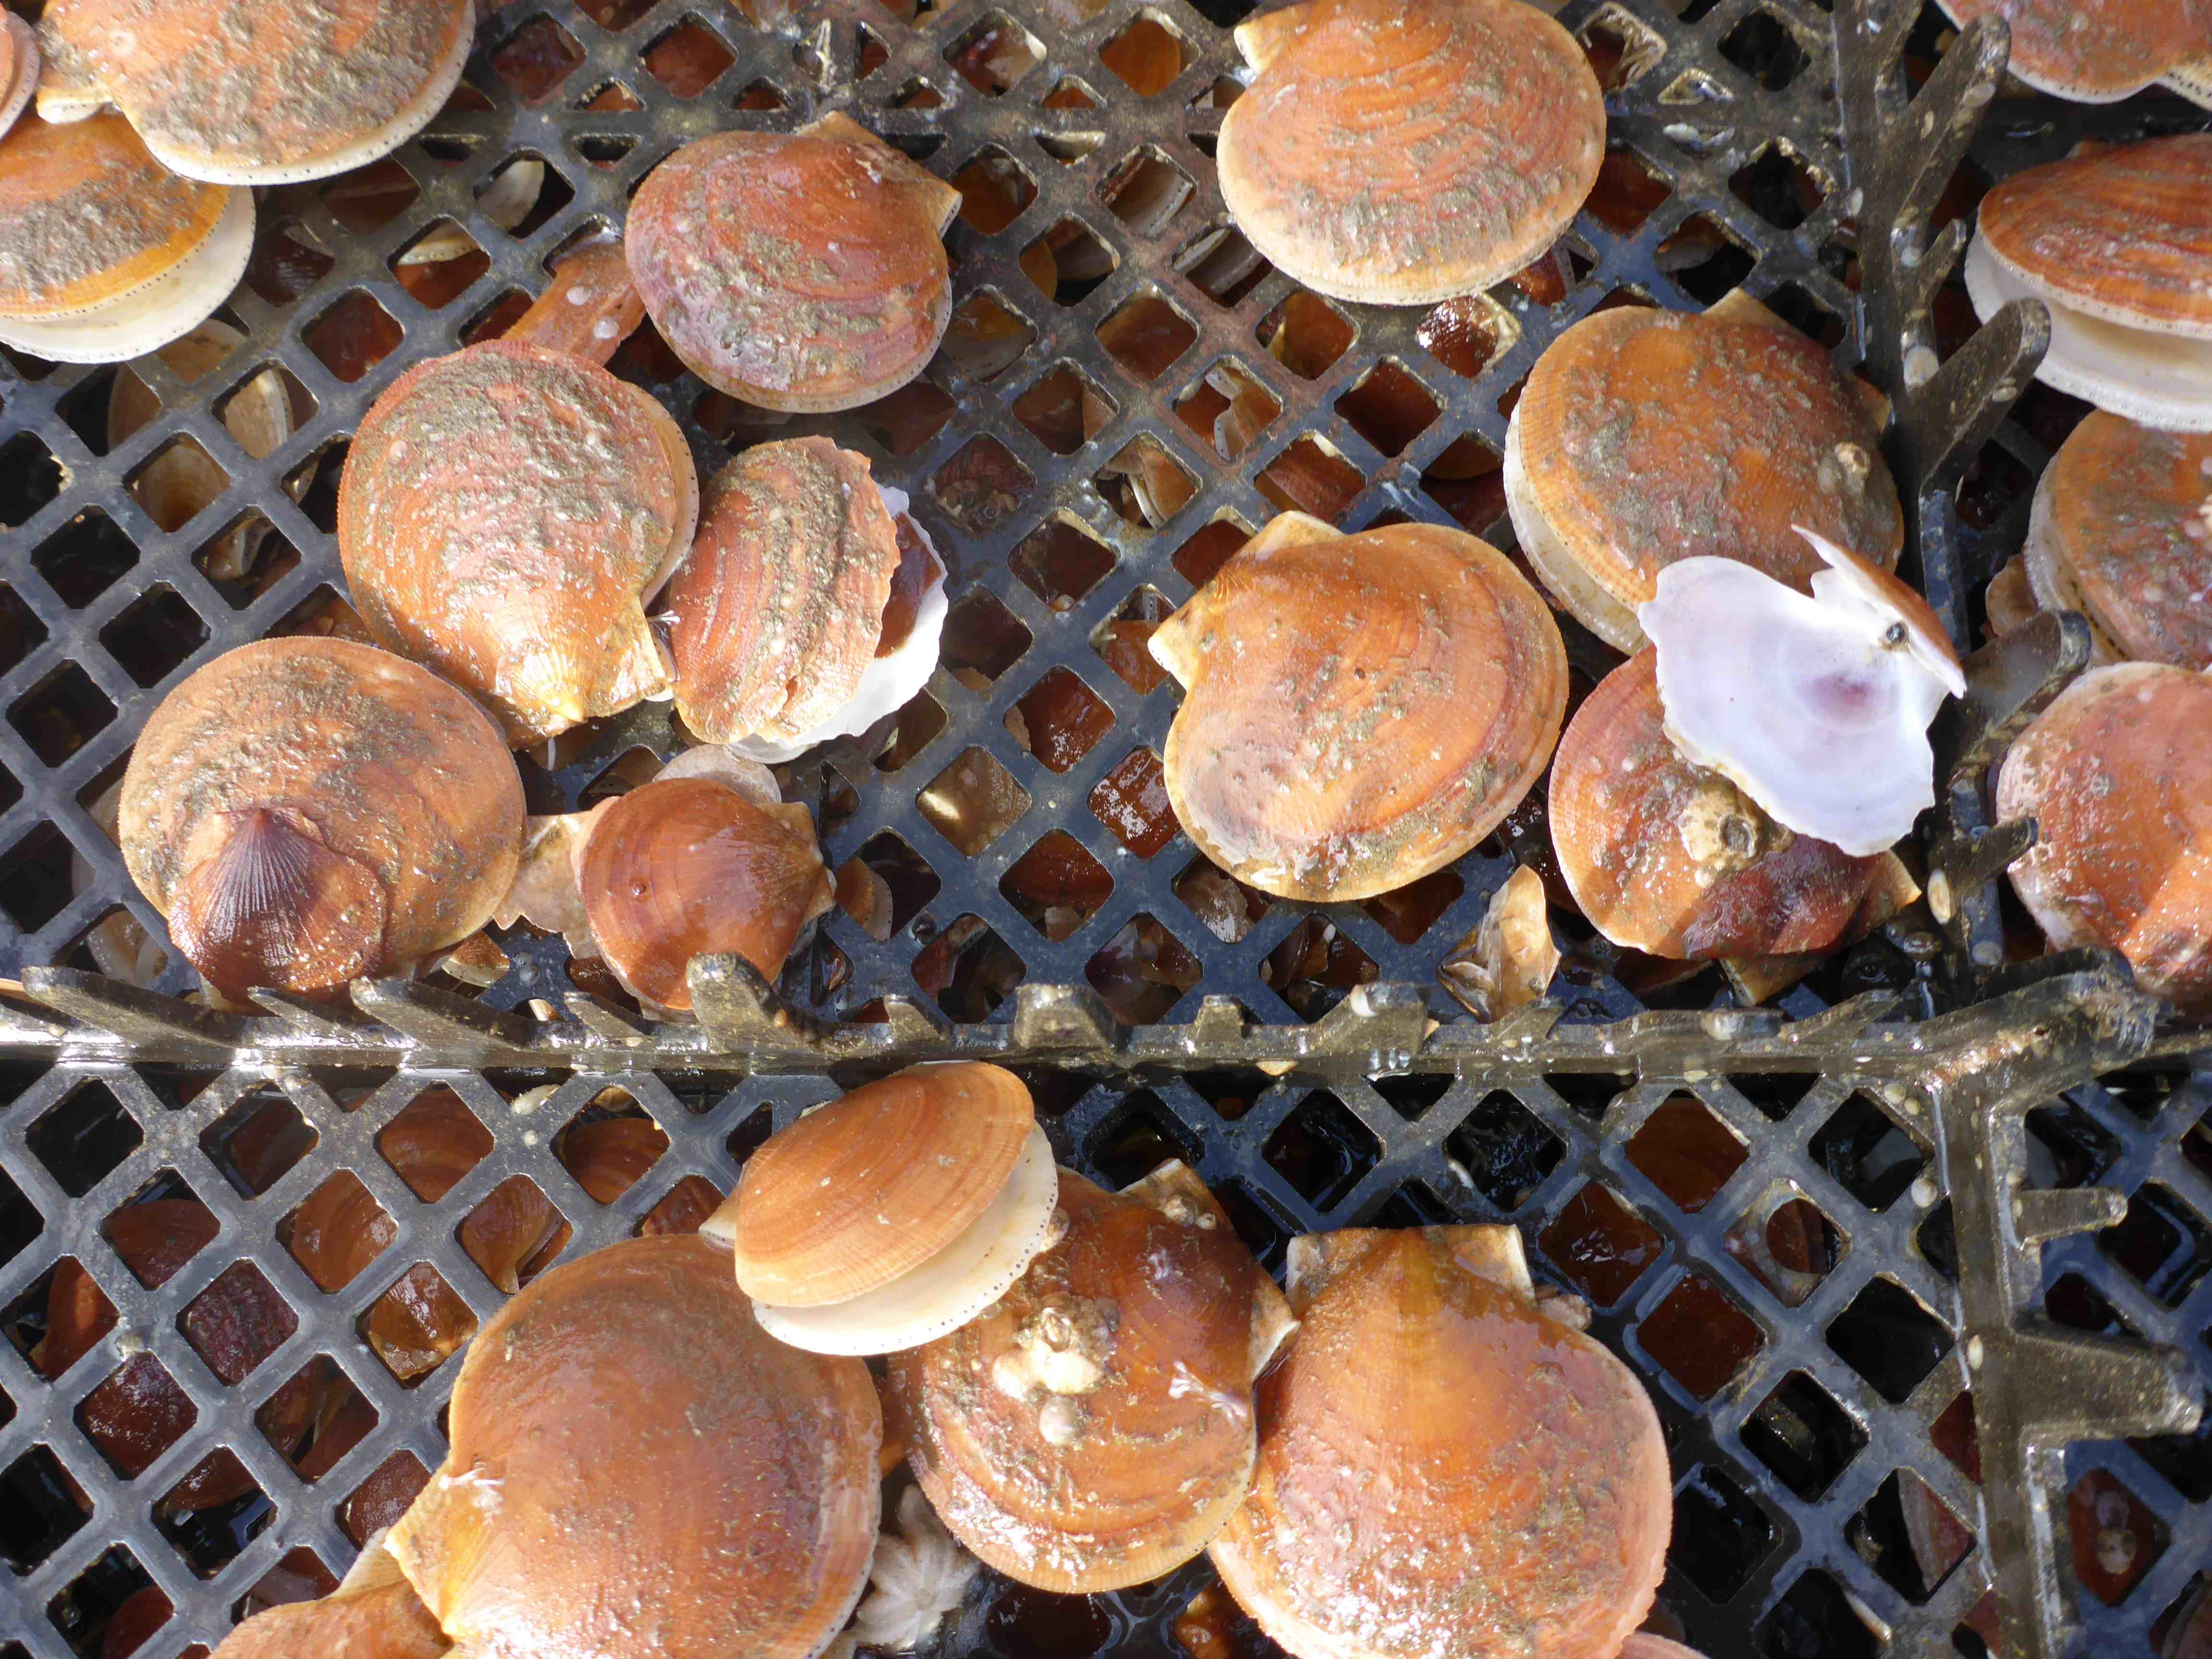 Twenty brown scallops, some with open shells, on black plastic mesh